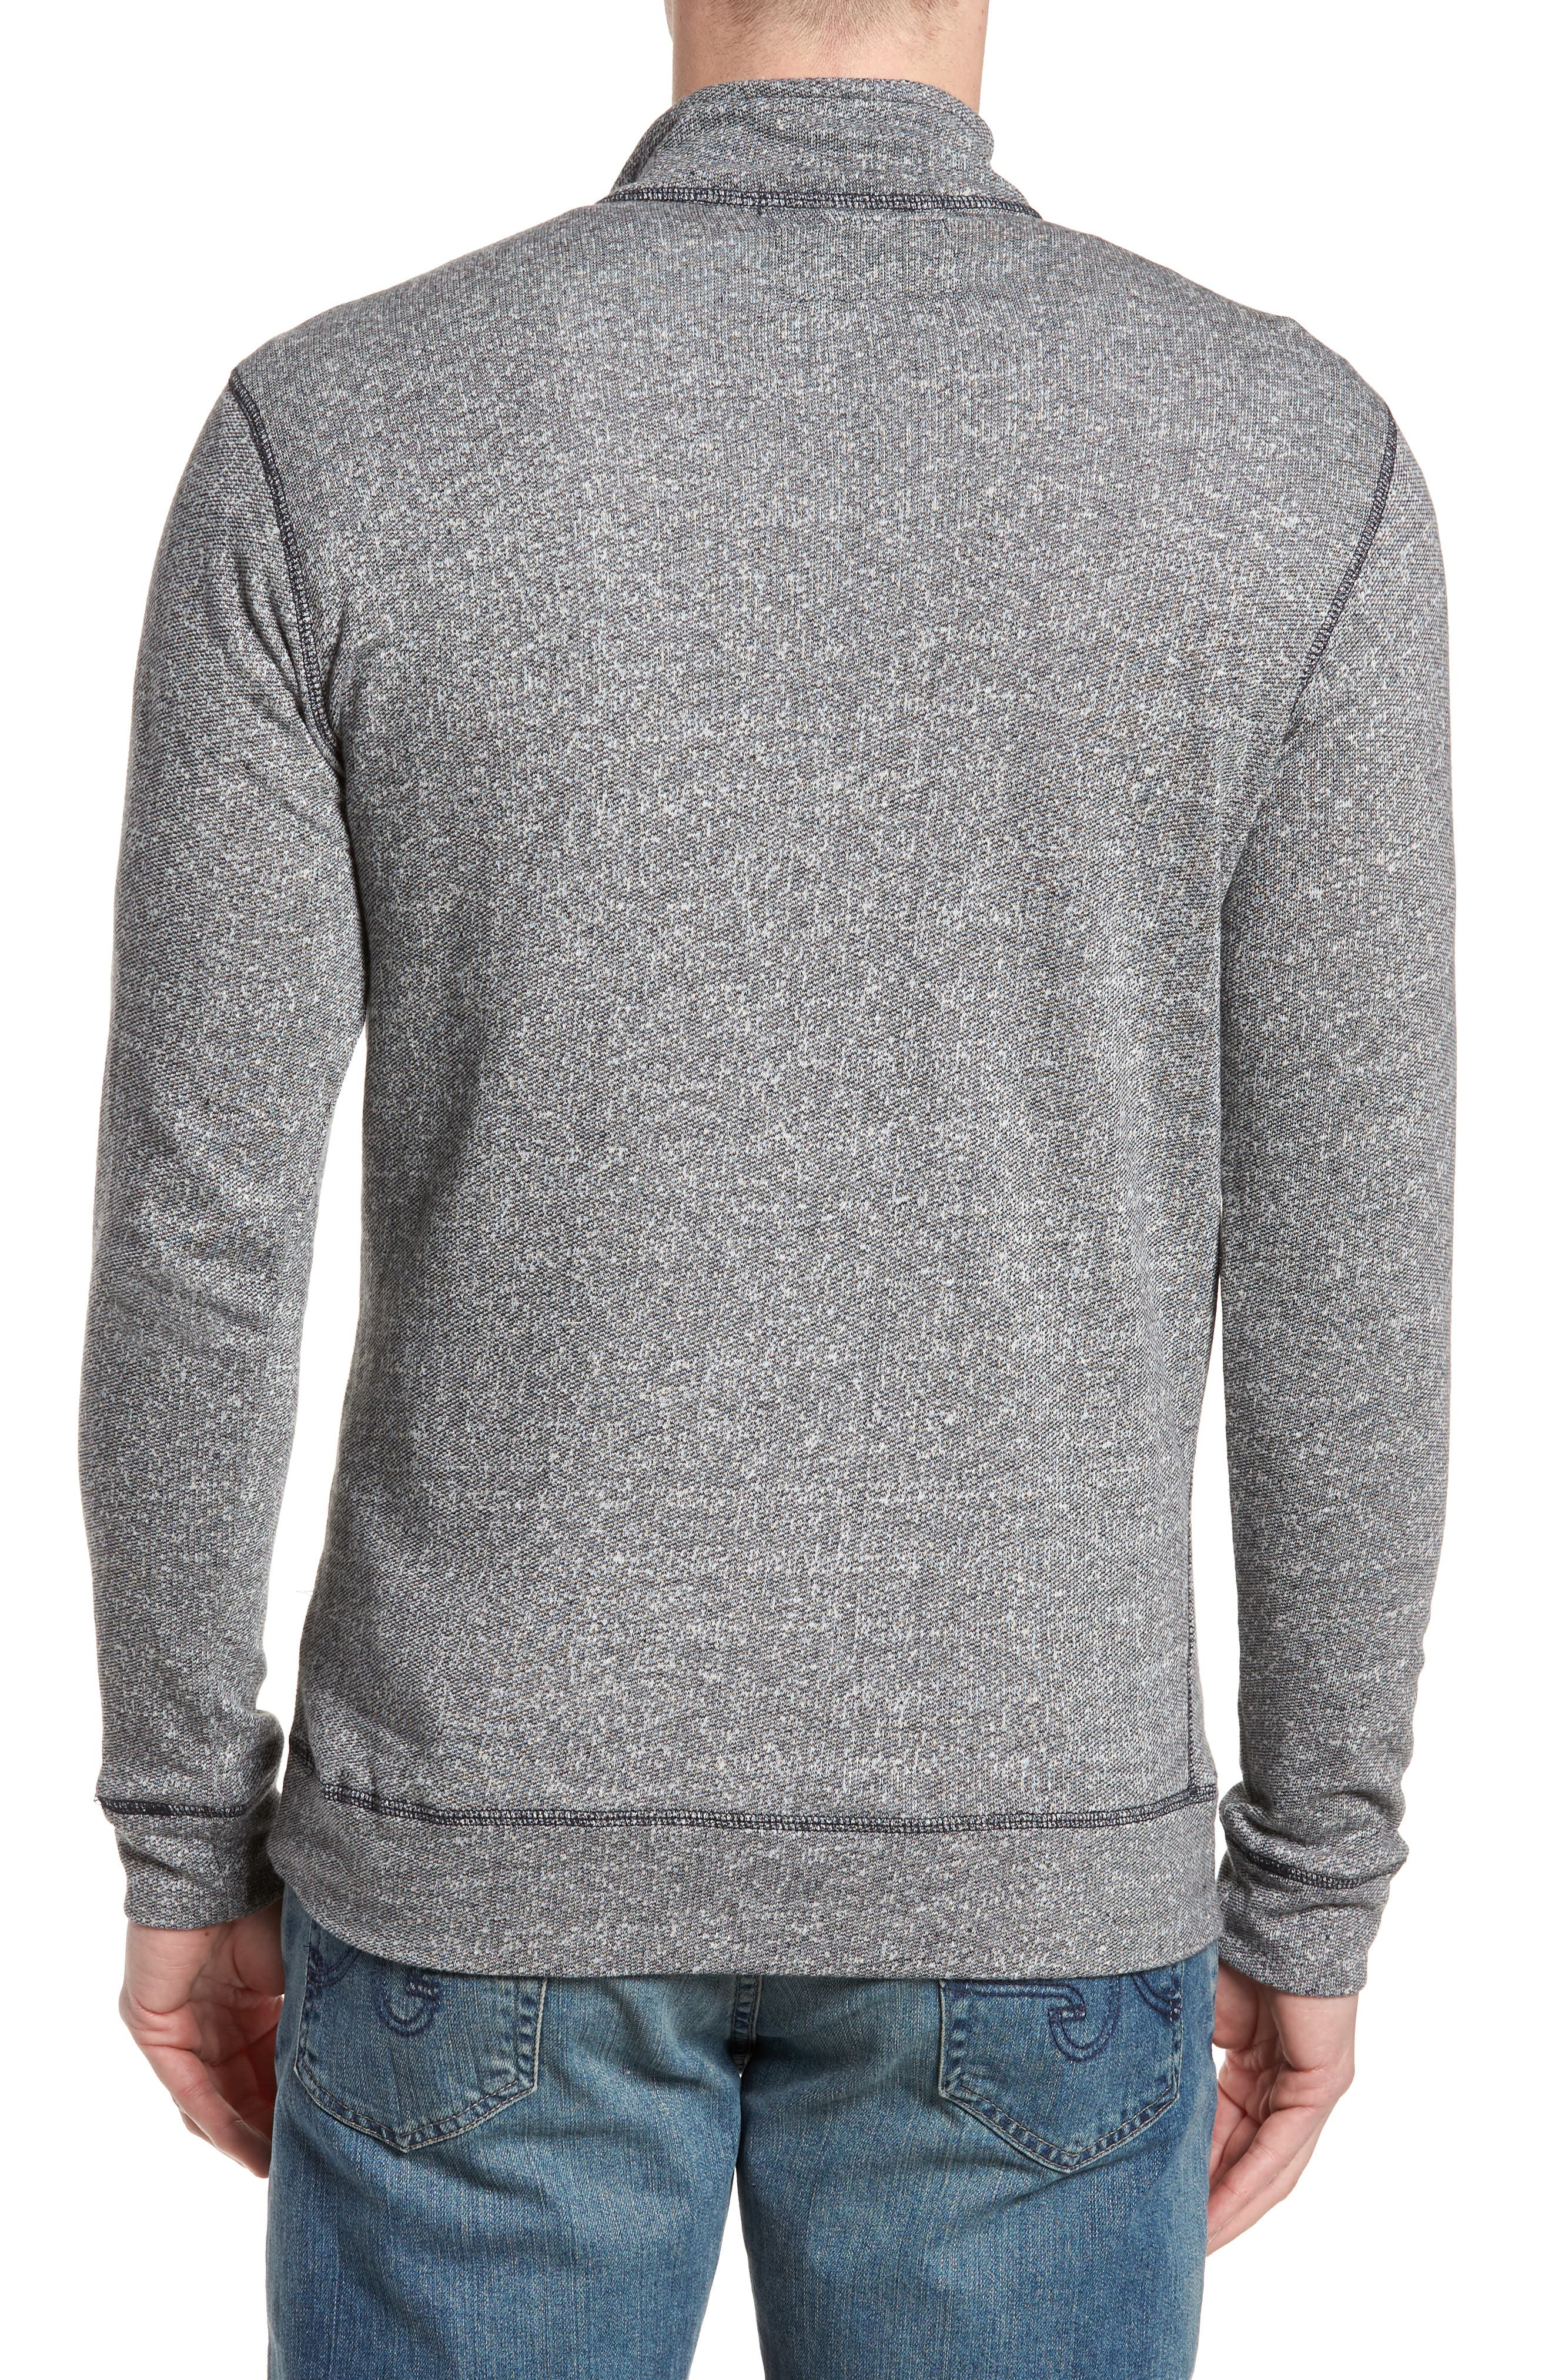 Regular Fit French Terry Pullover,                             Alternate thumbnail 2, color,                             010